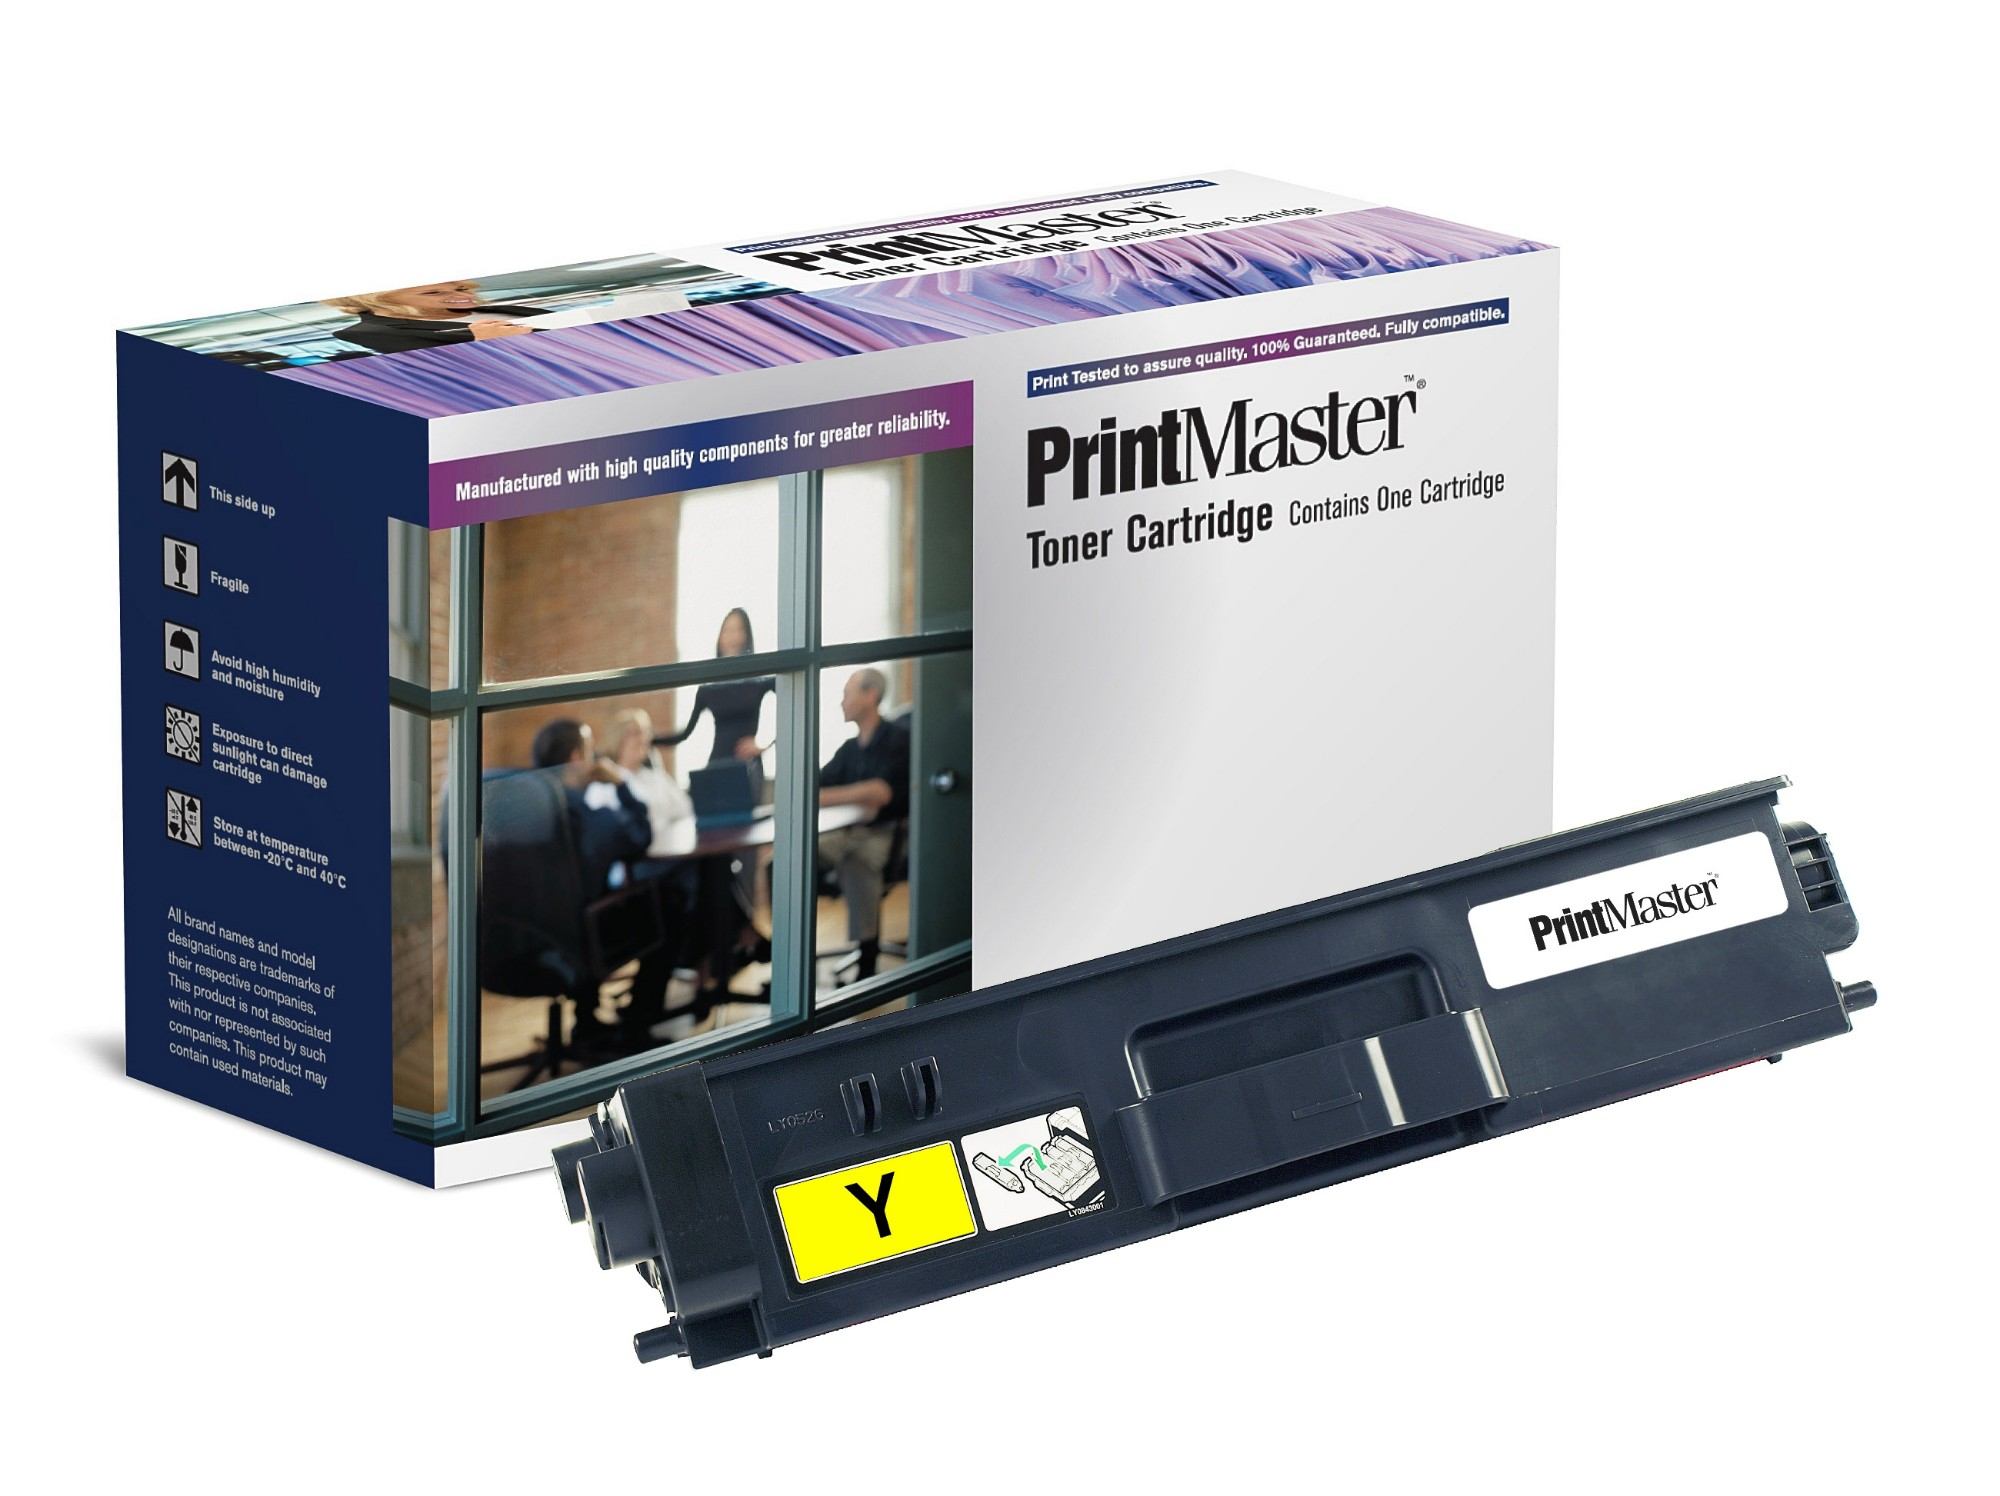 PrintMaster Yellow Toner Cartridge for Brother HL-4140CN/4150CDN/4570CDW